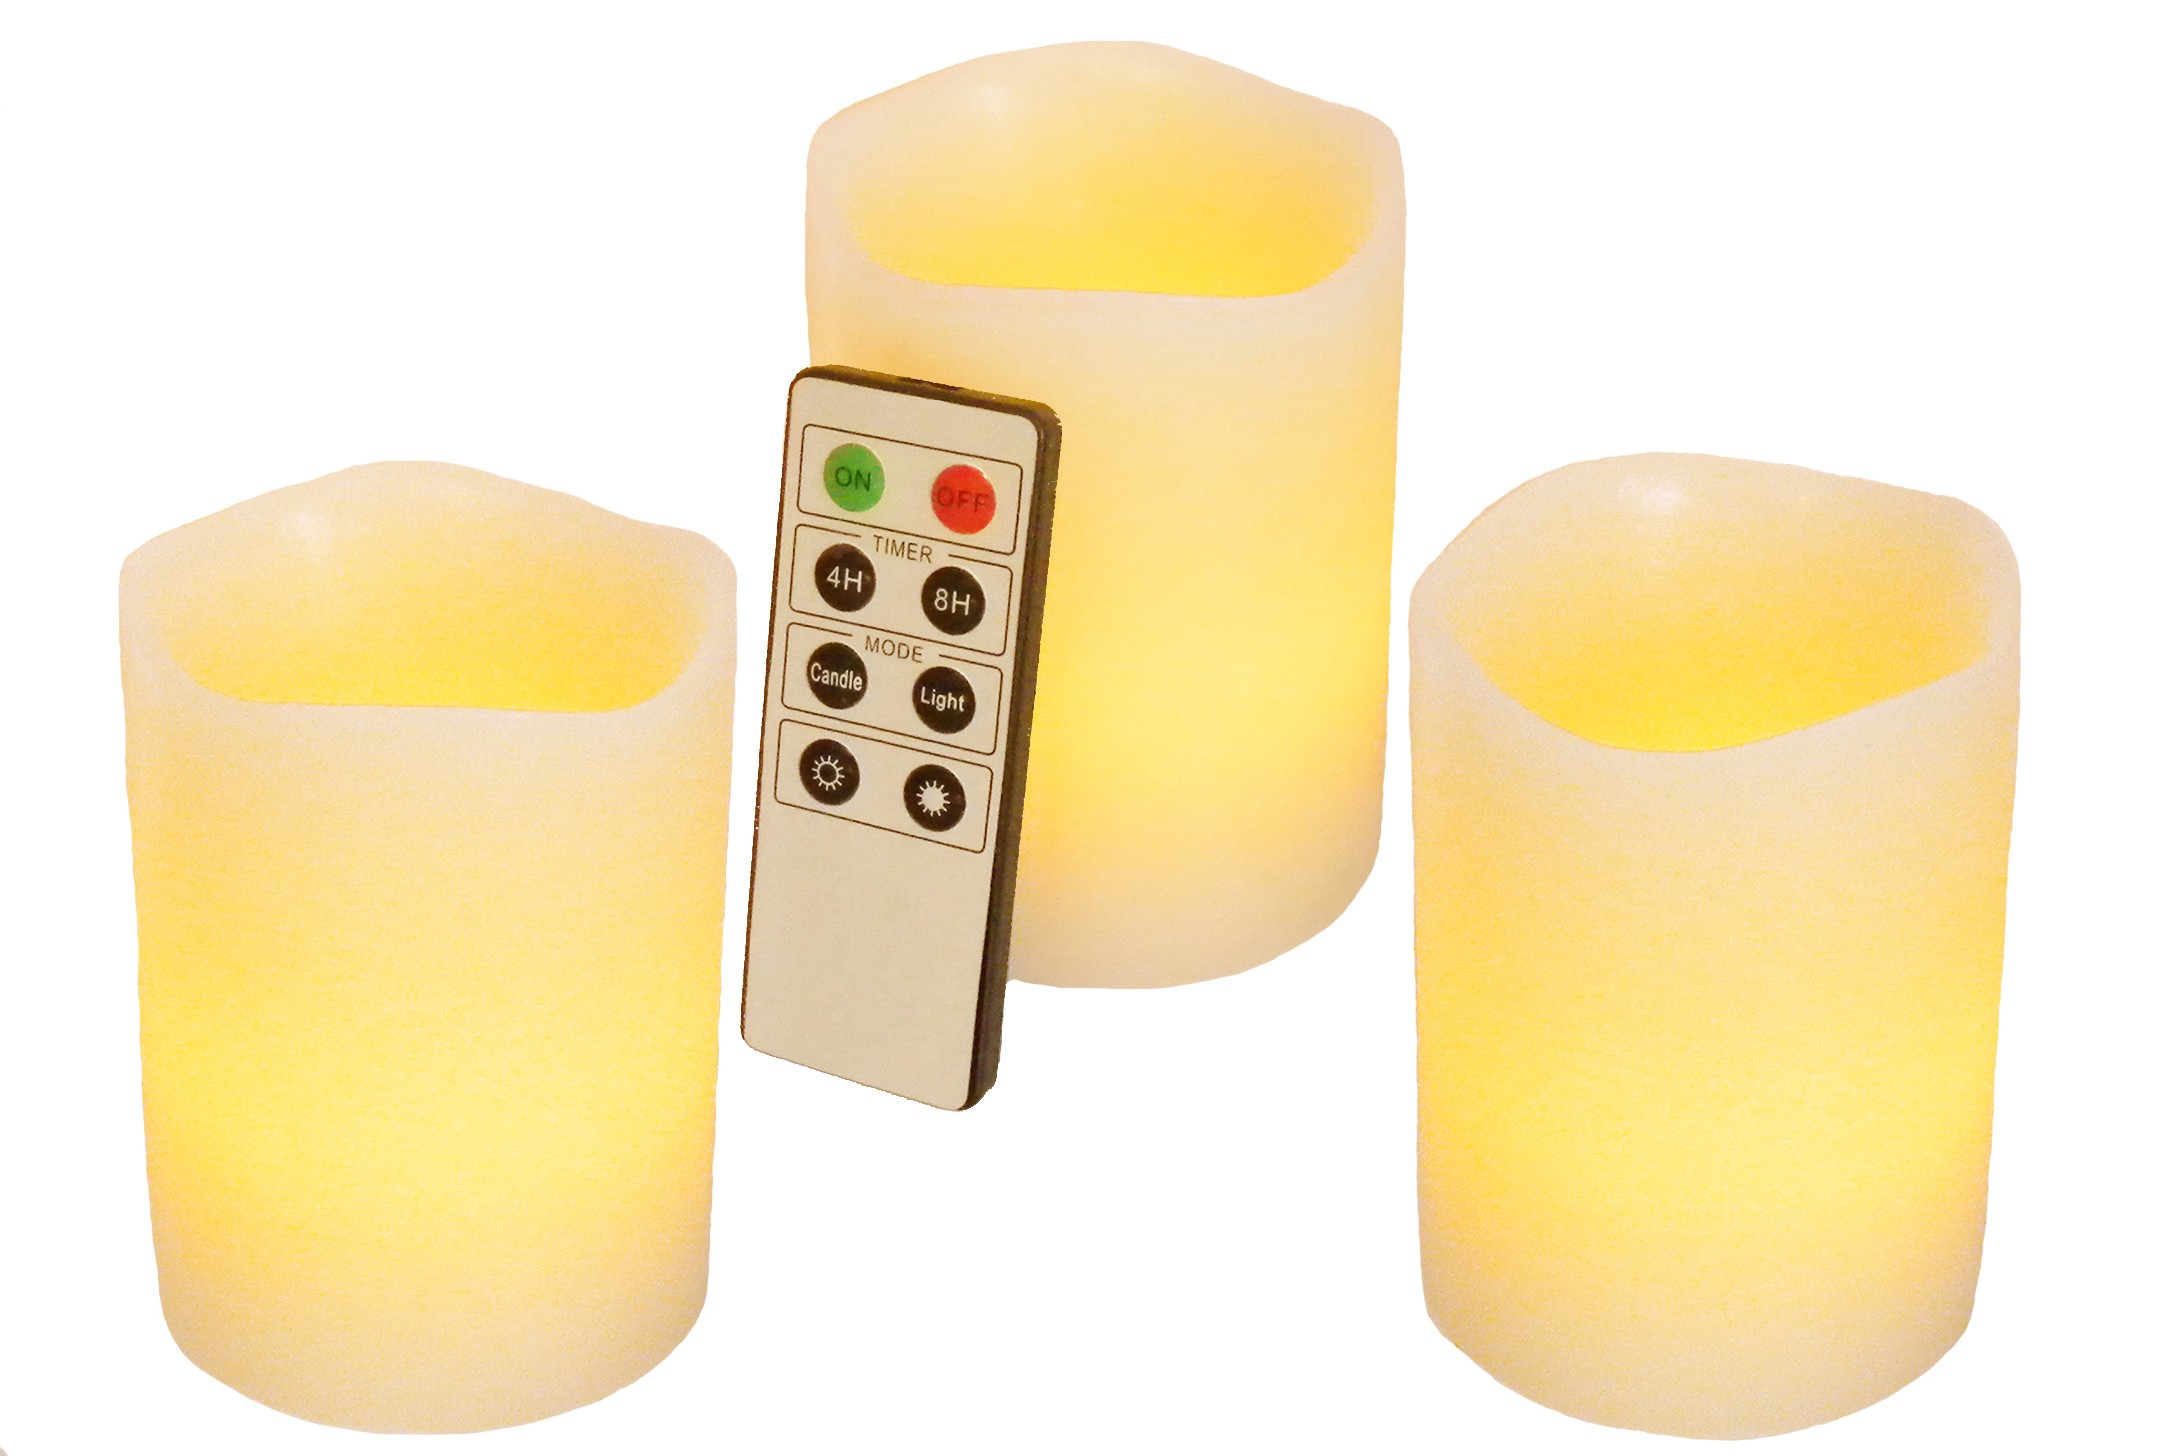 Mooncandles 3 Vanilla Scented Wax flameless candles with timer for decoration ideas